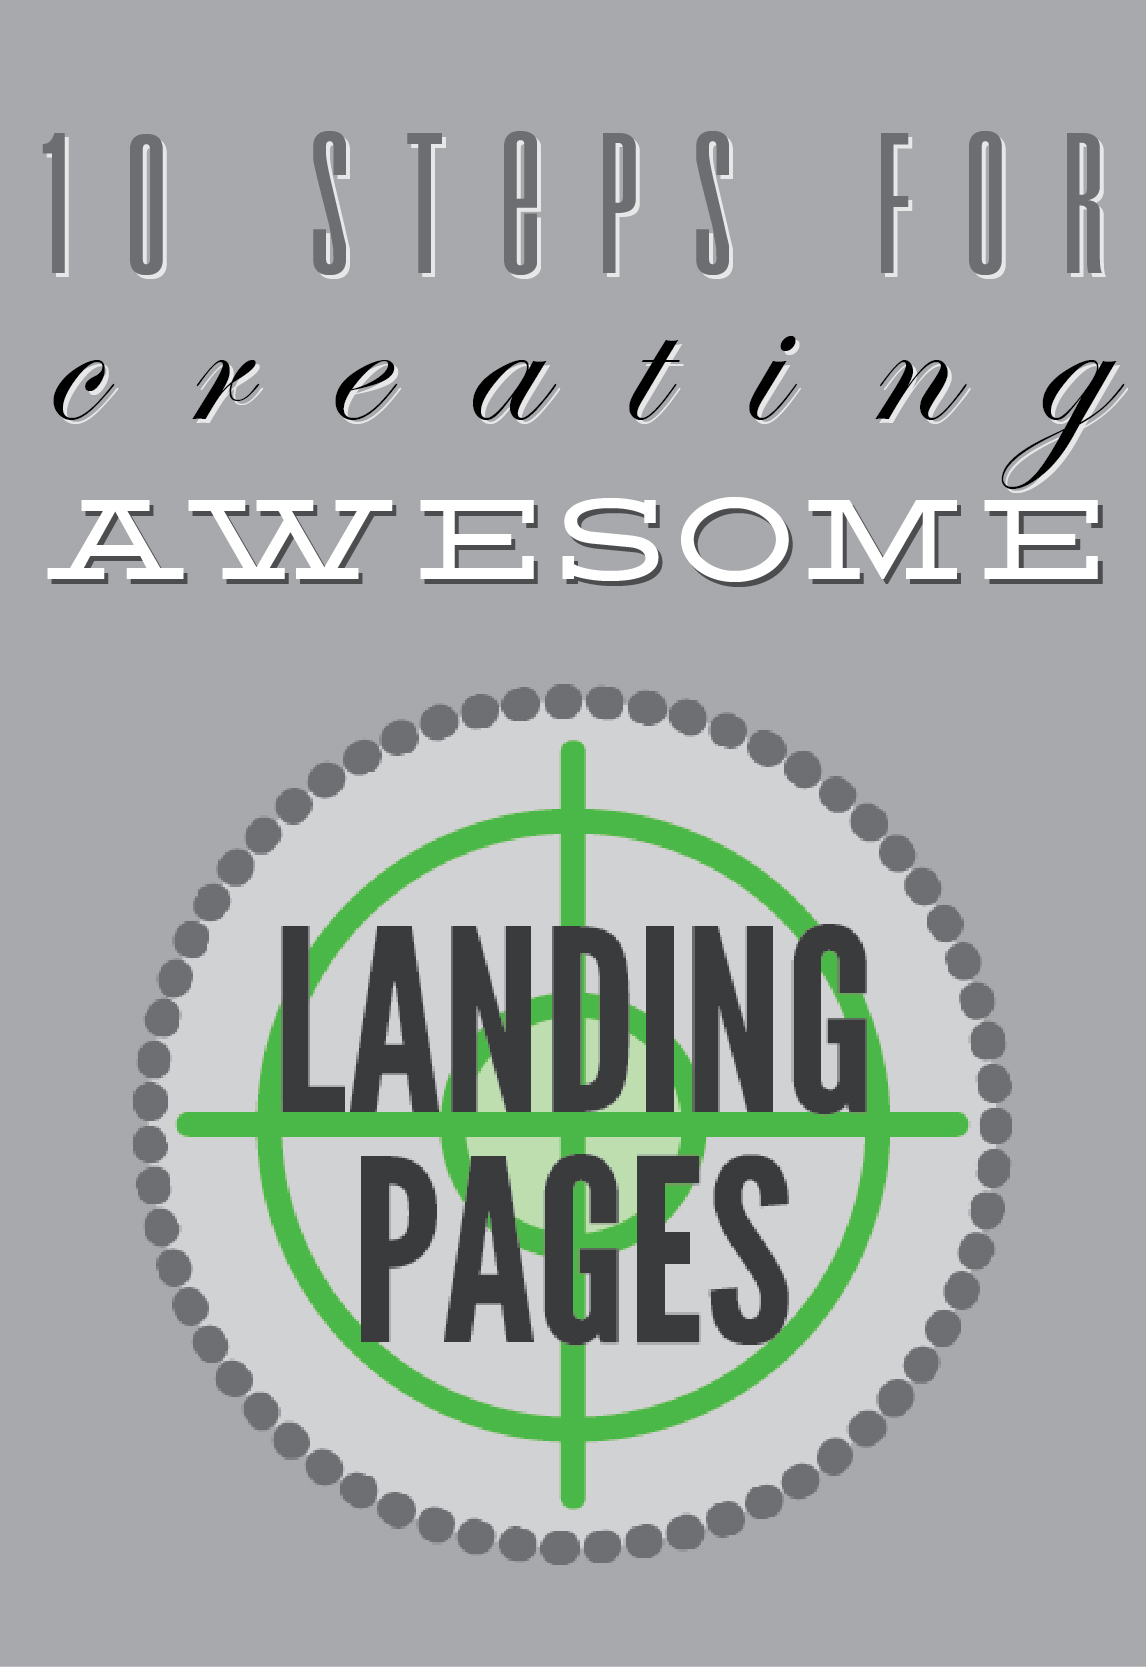 white papers, marketing for equipment dealerships, marketing plans for dealers, importance of landing pages,  marketing strategies, marketing resources for dealers, marketing tools for dealerships, website analysis, SEO for dealers, digital marketing, marketing automation, video marketing, social media and marketing